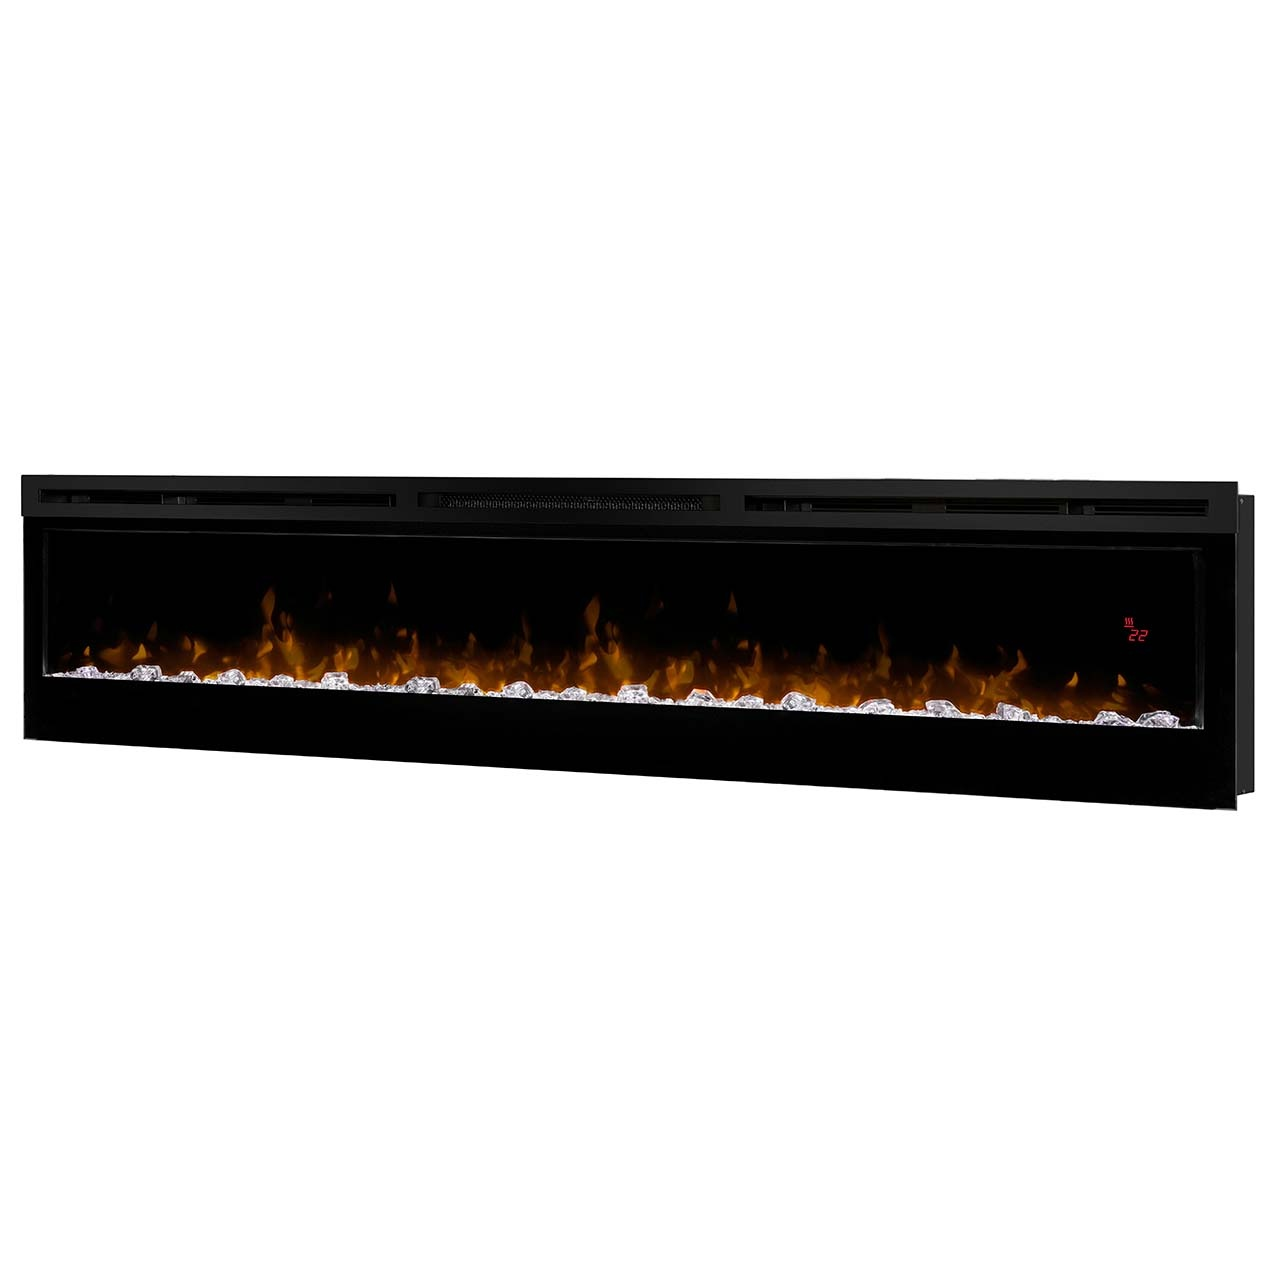 Dimplex 74 inch Prism BLF7451 Linear Fireplace